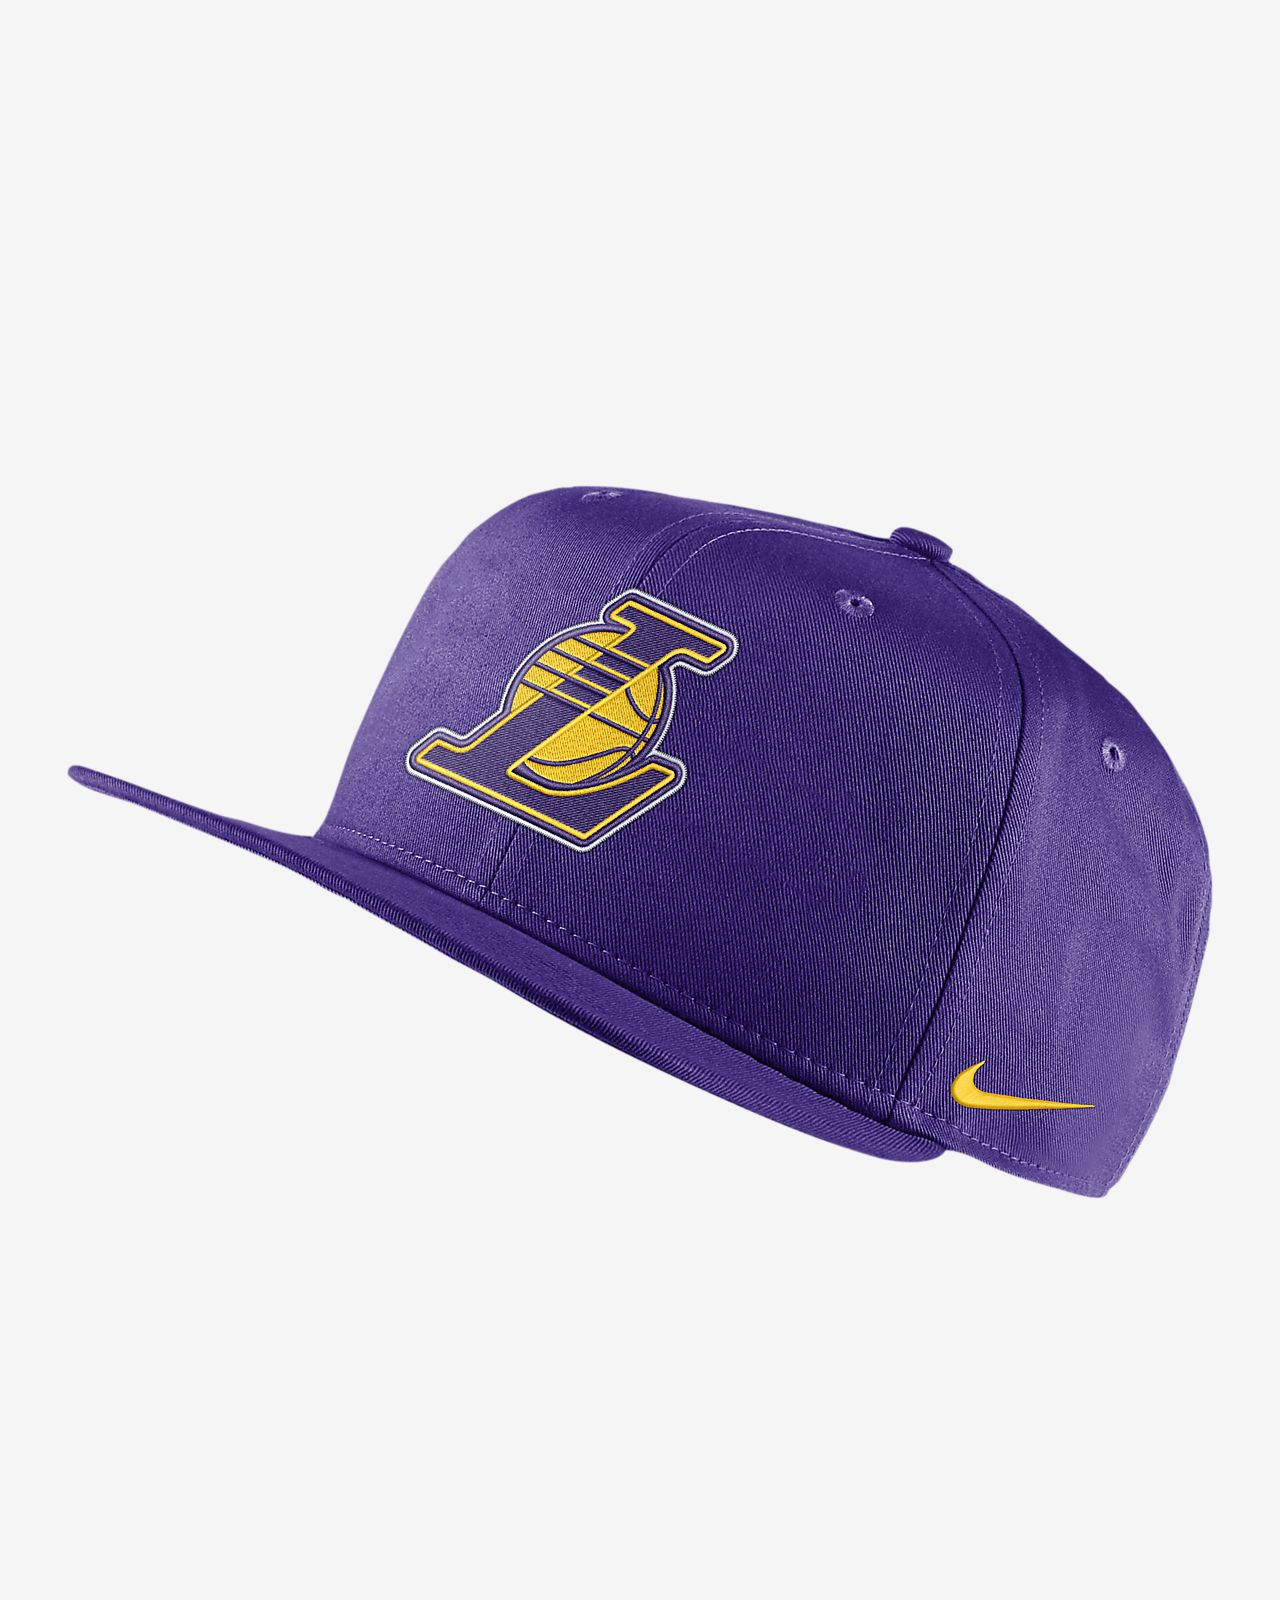 meilleures baskets 6adc9 03899 Casquette NBA Los Angeles Lakers Nike Pro